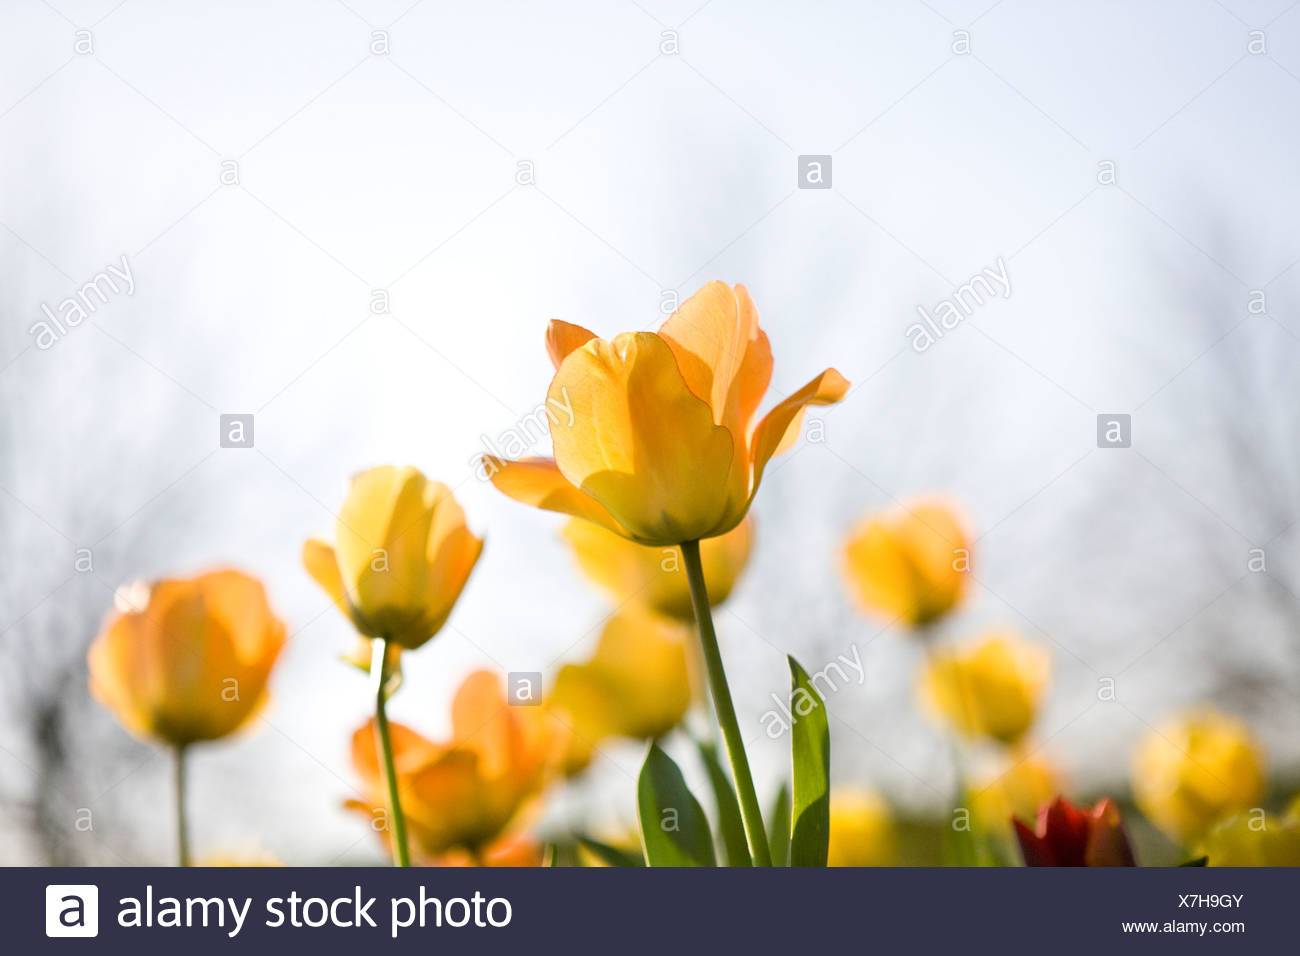 Yellow tulips in spring - Stock Image